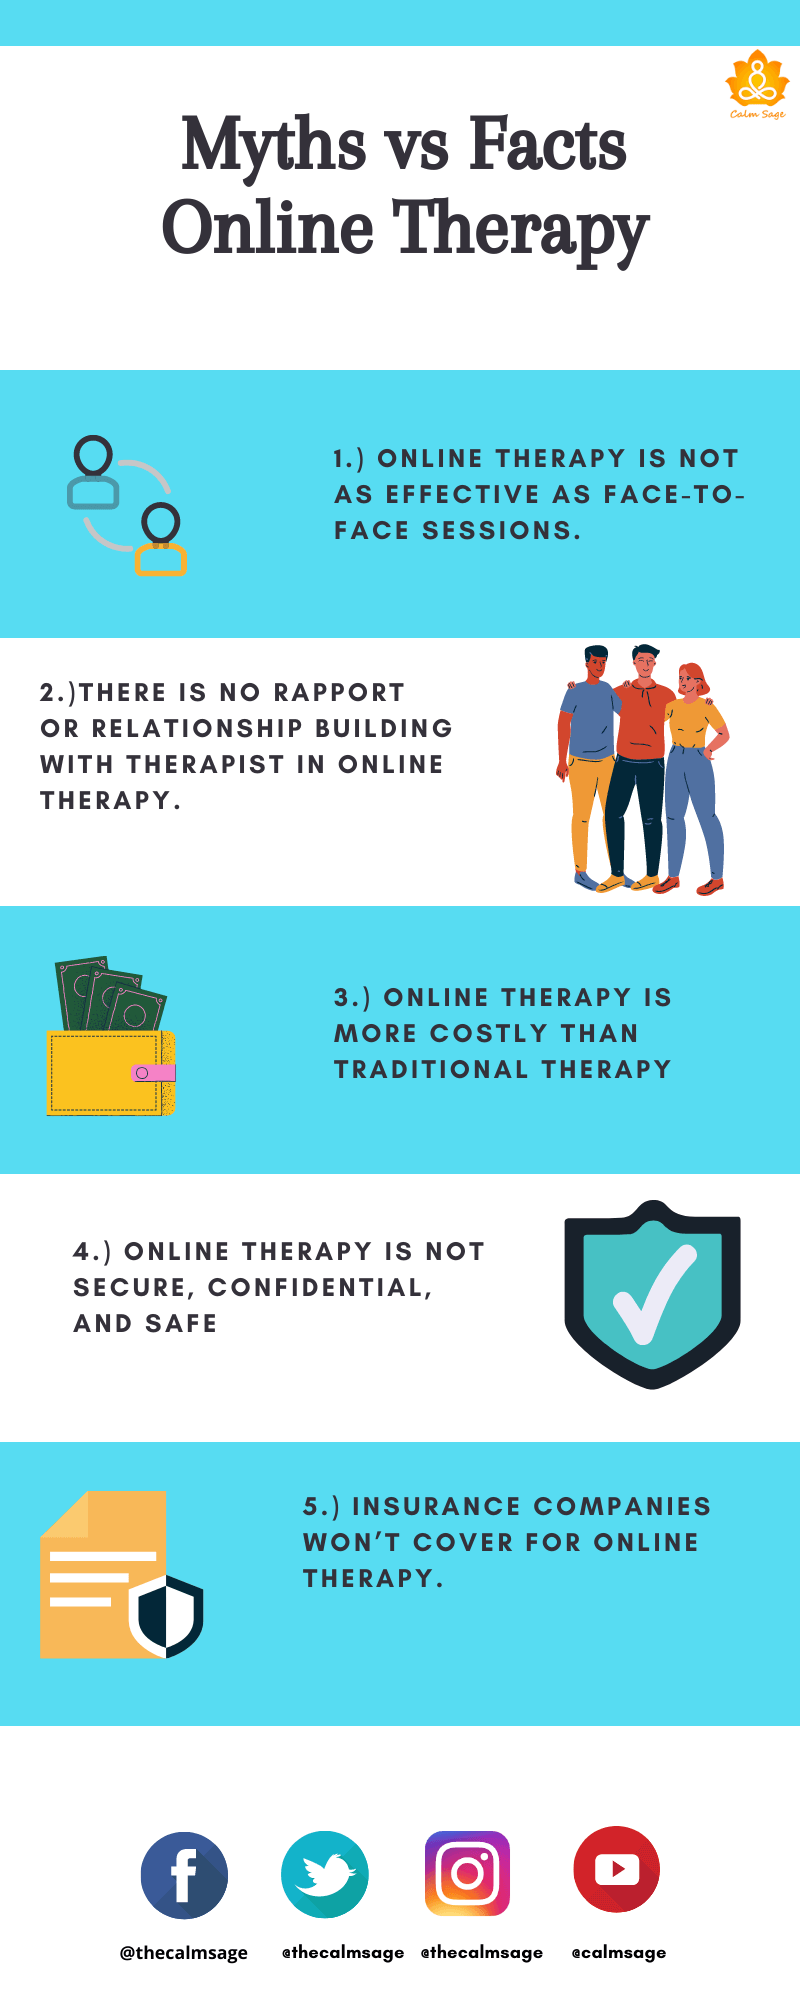 Myths vs facts online therapy